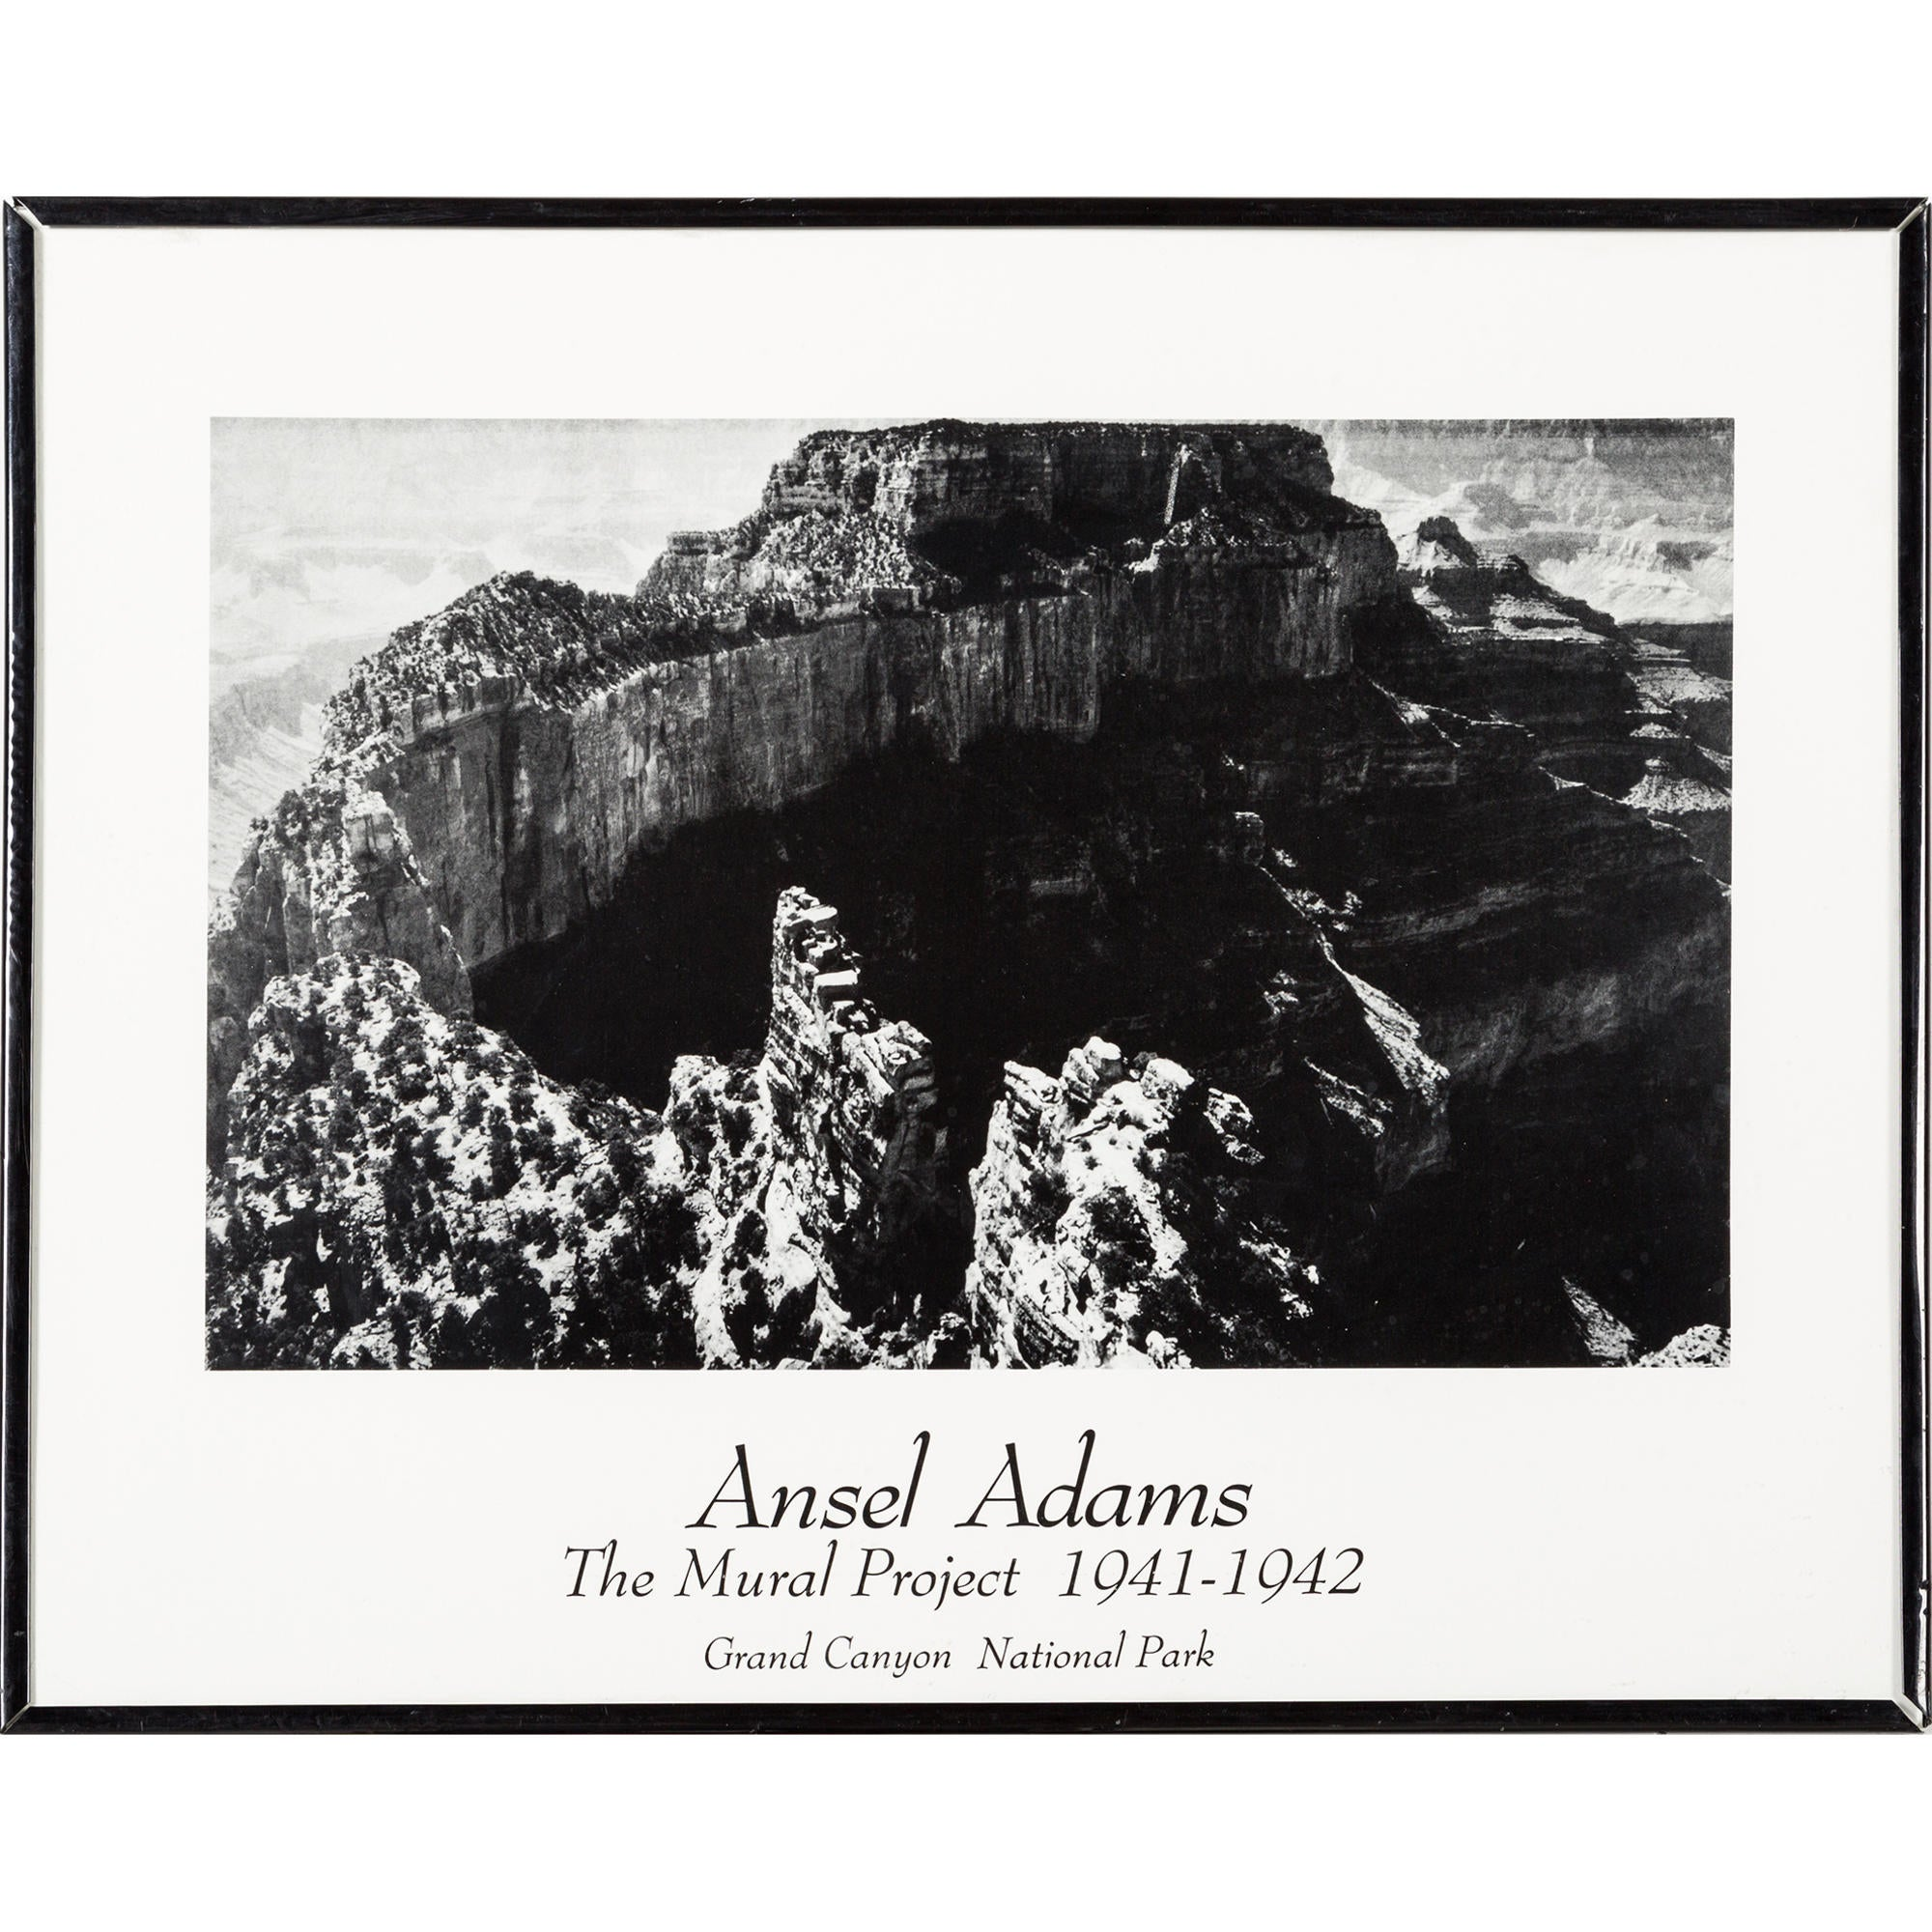 Ansel adams the mural project pts21229 the realreal for Ansel adams the mural project